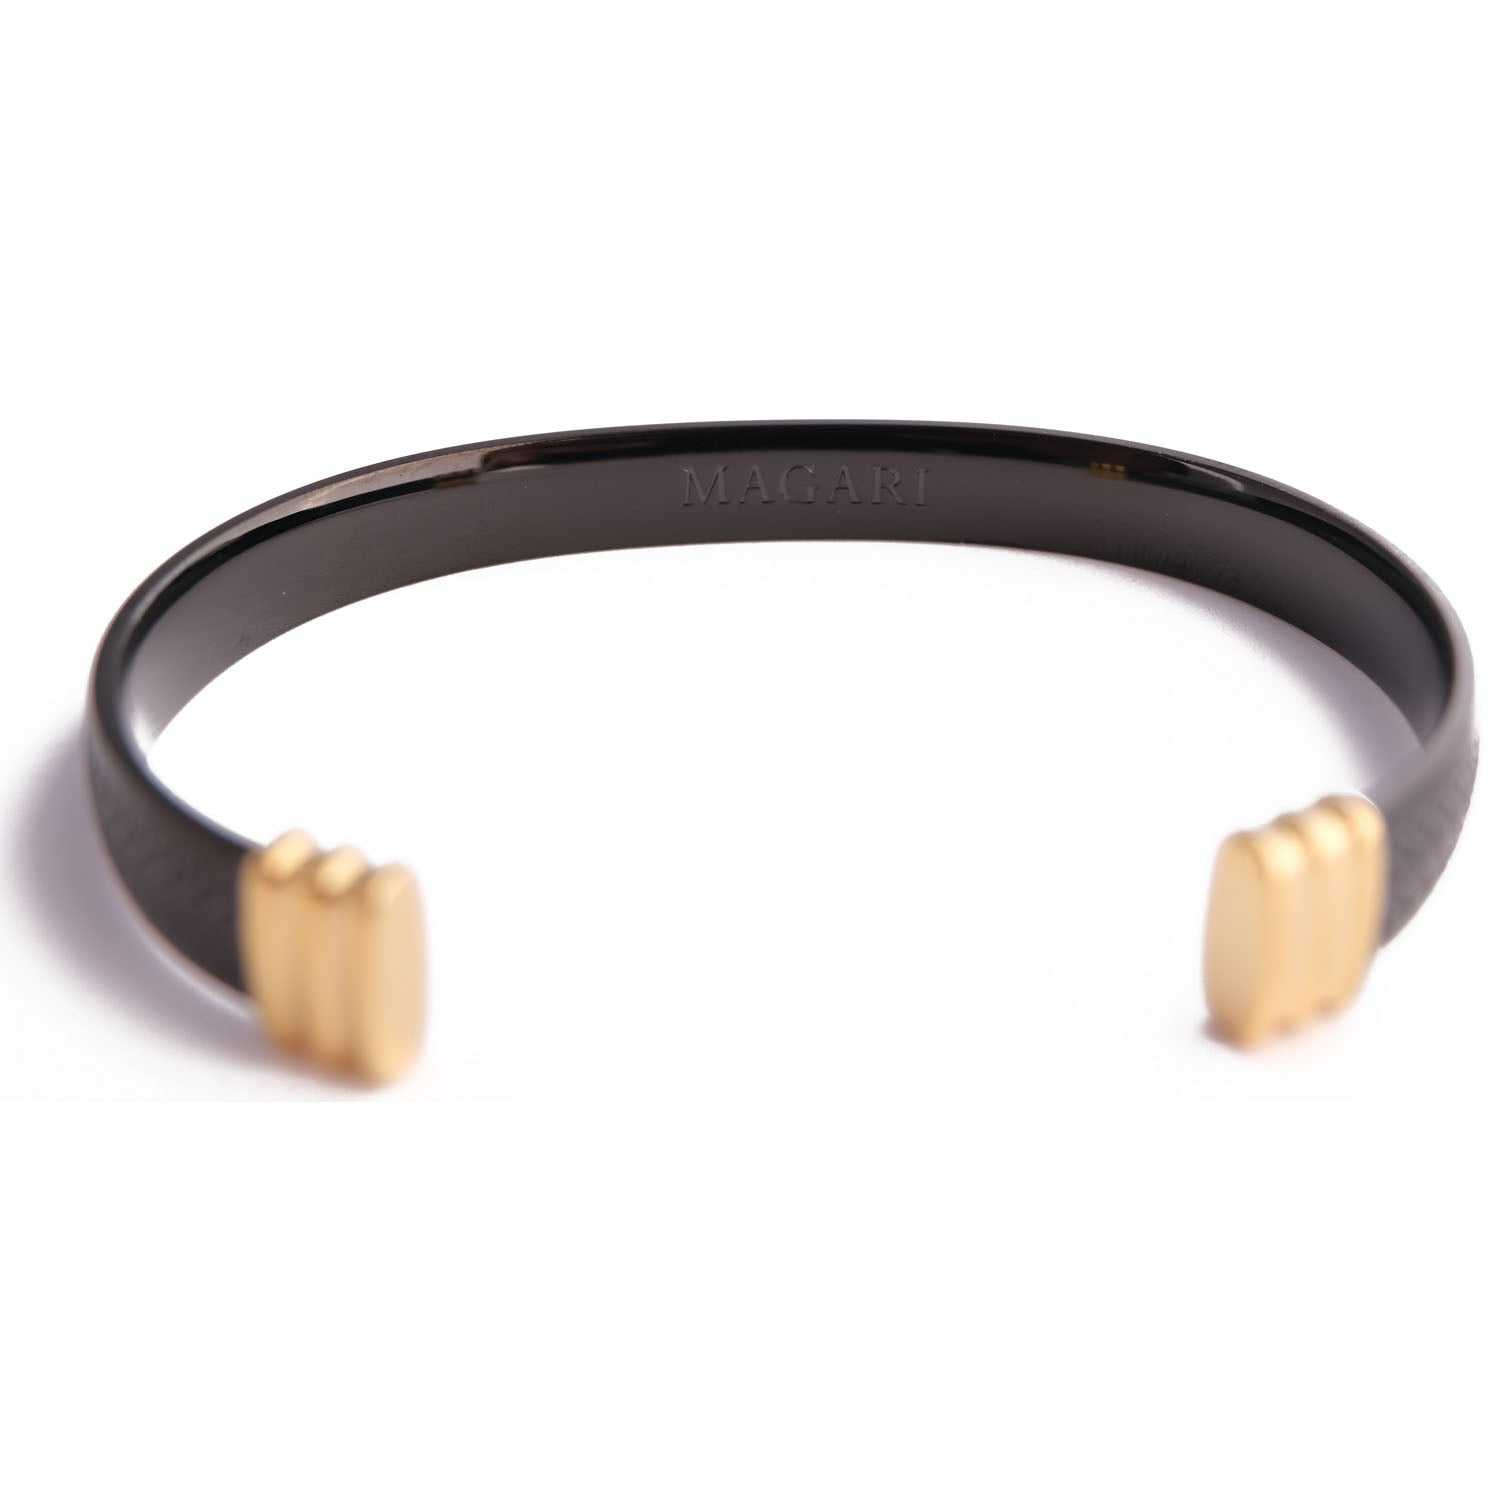 Magari Cuff - Black/Gold